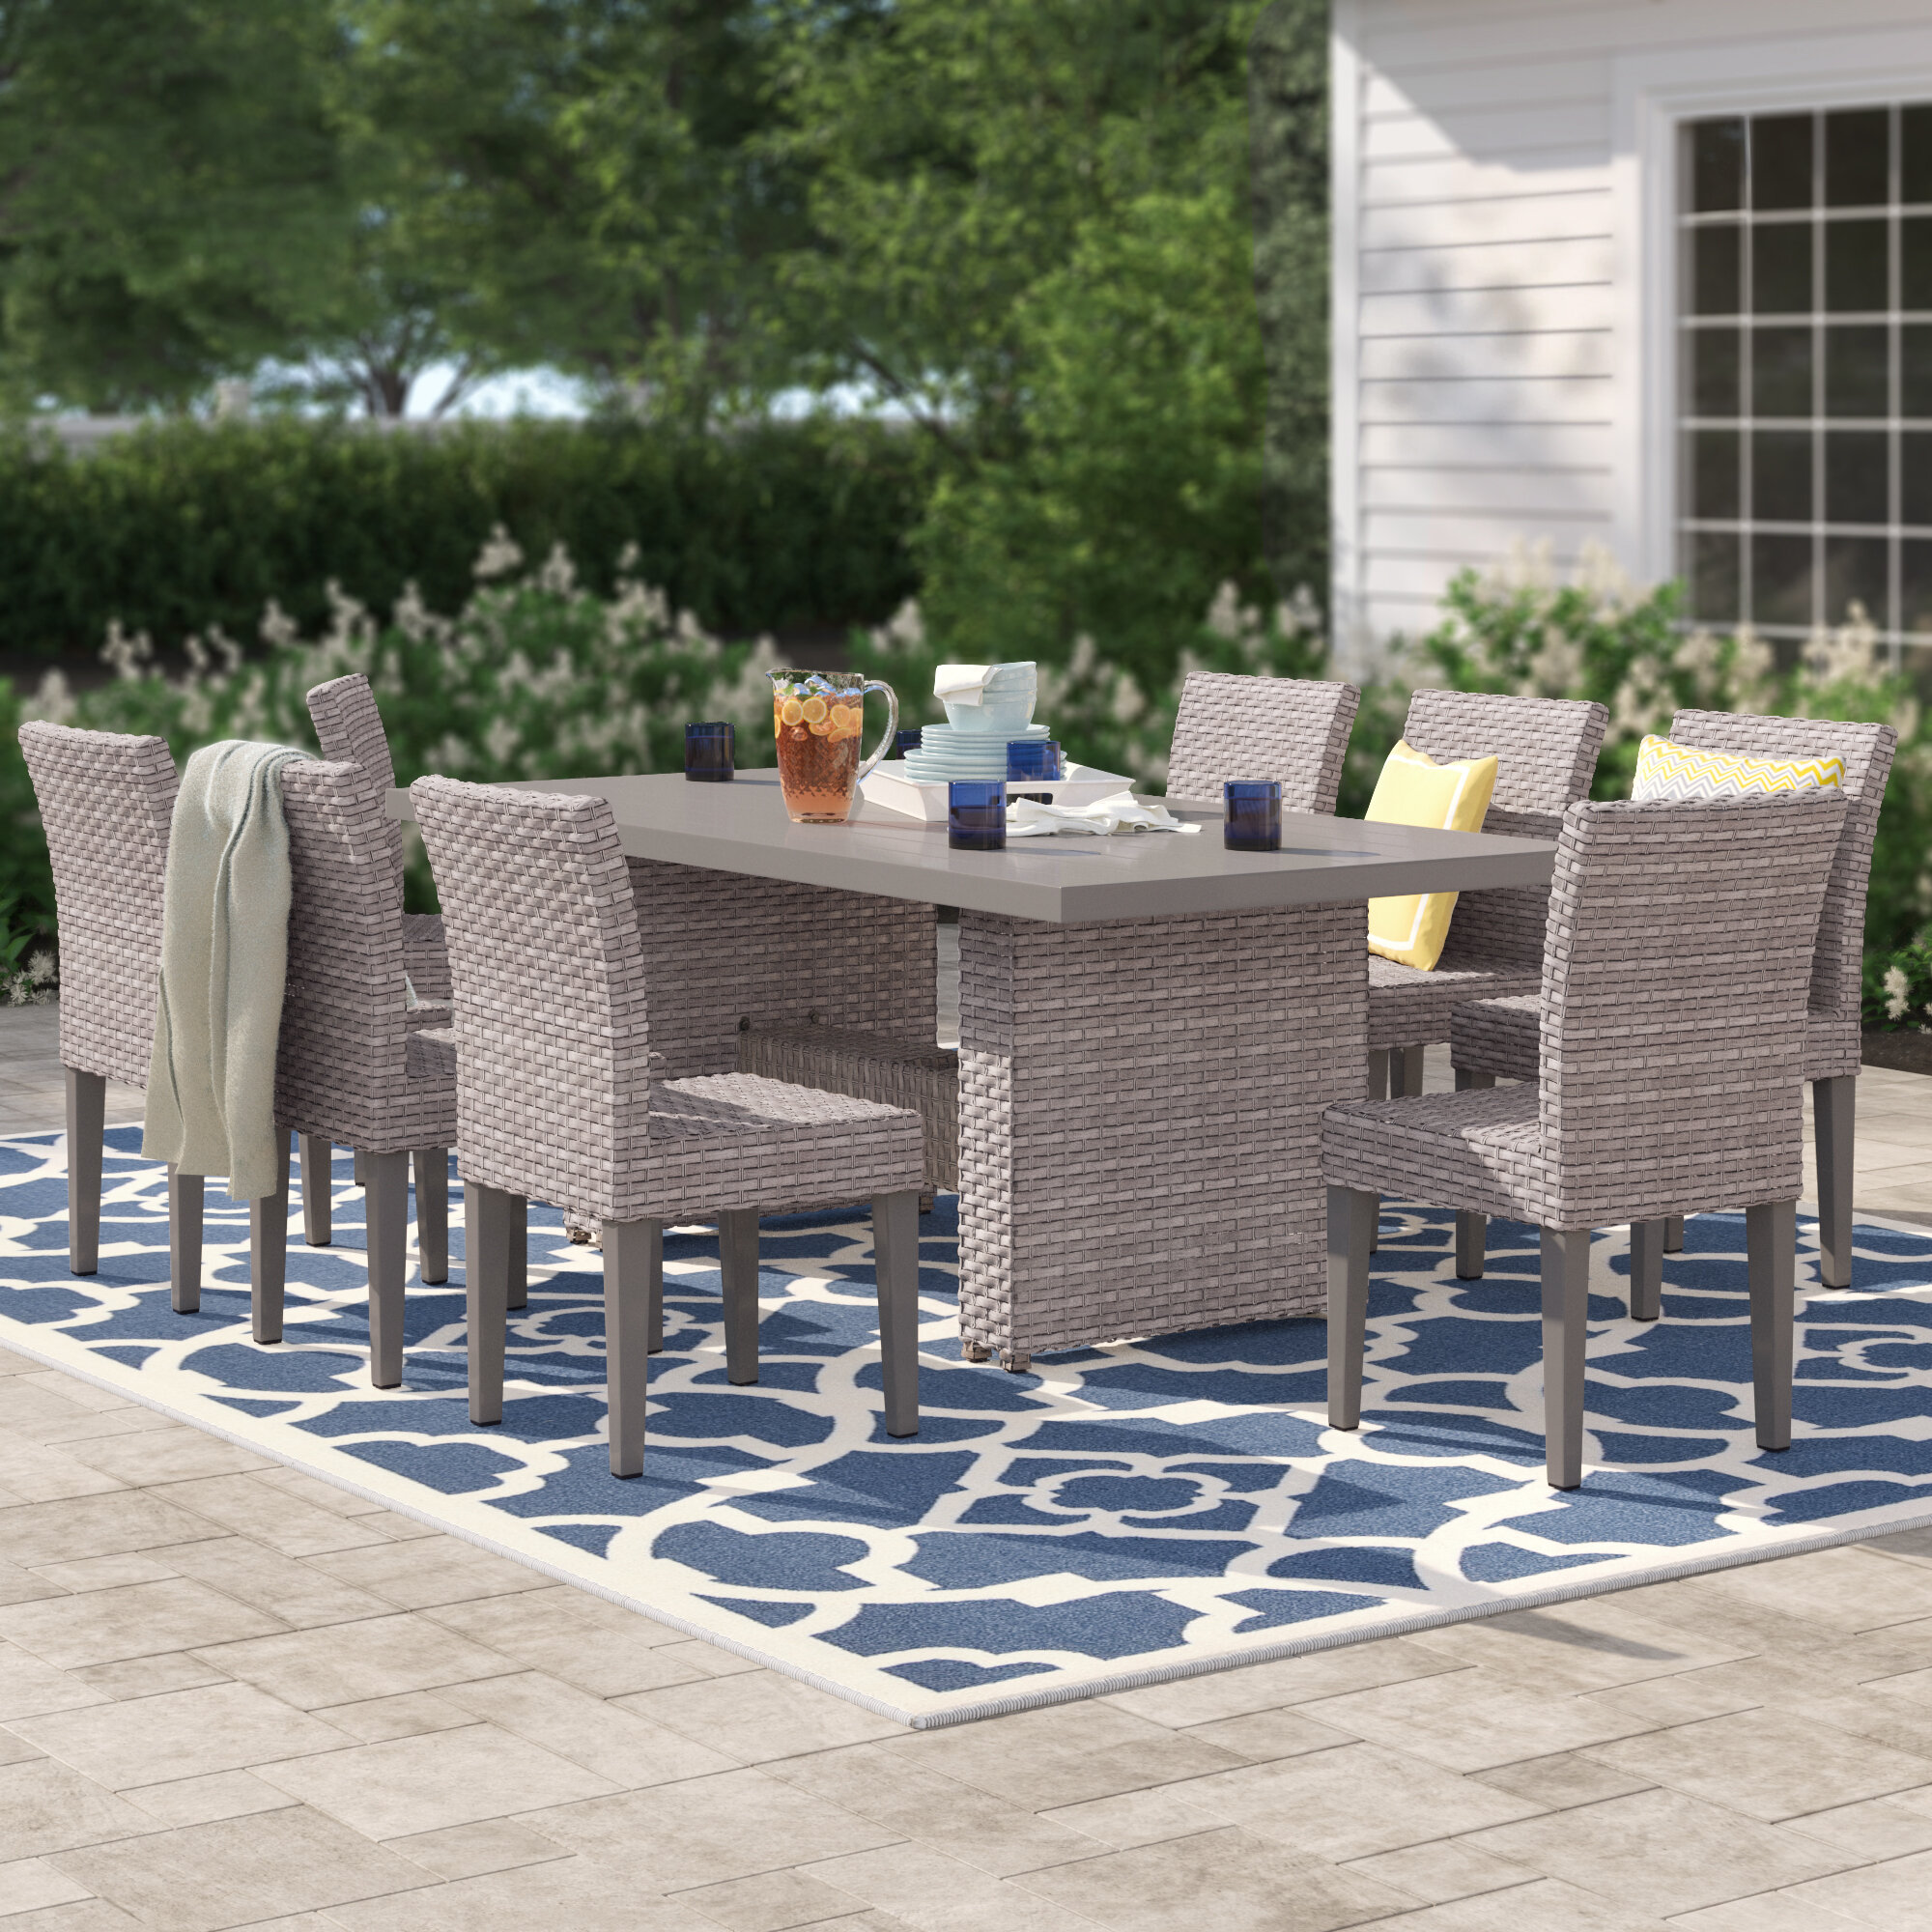 Sol 72 Outdoor Kenwick 9 Piece Outdoor Patio Dining Set Reviews Wayfair